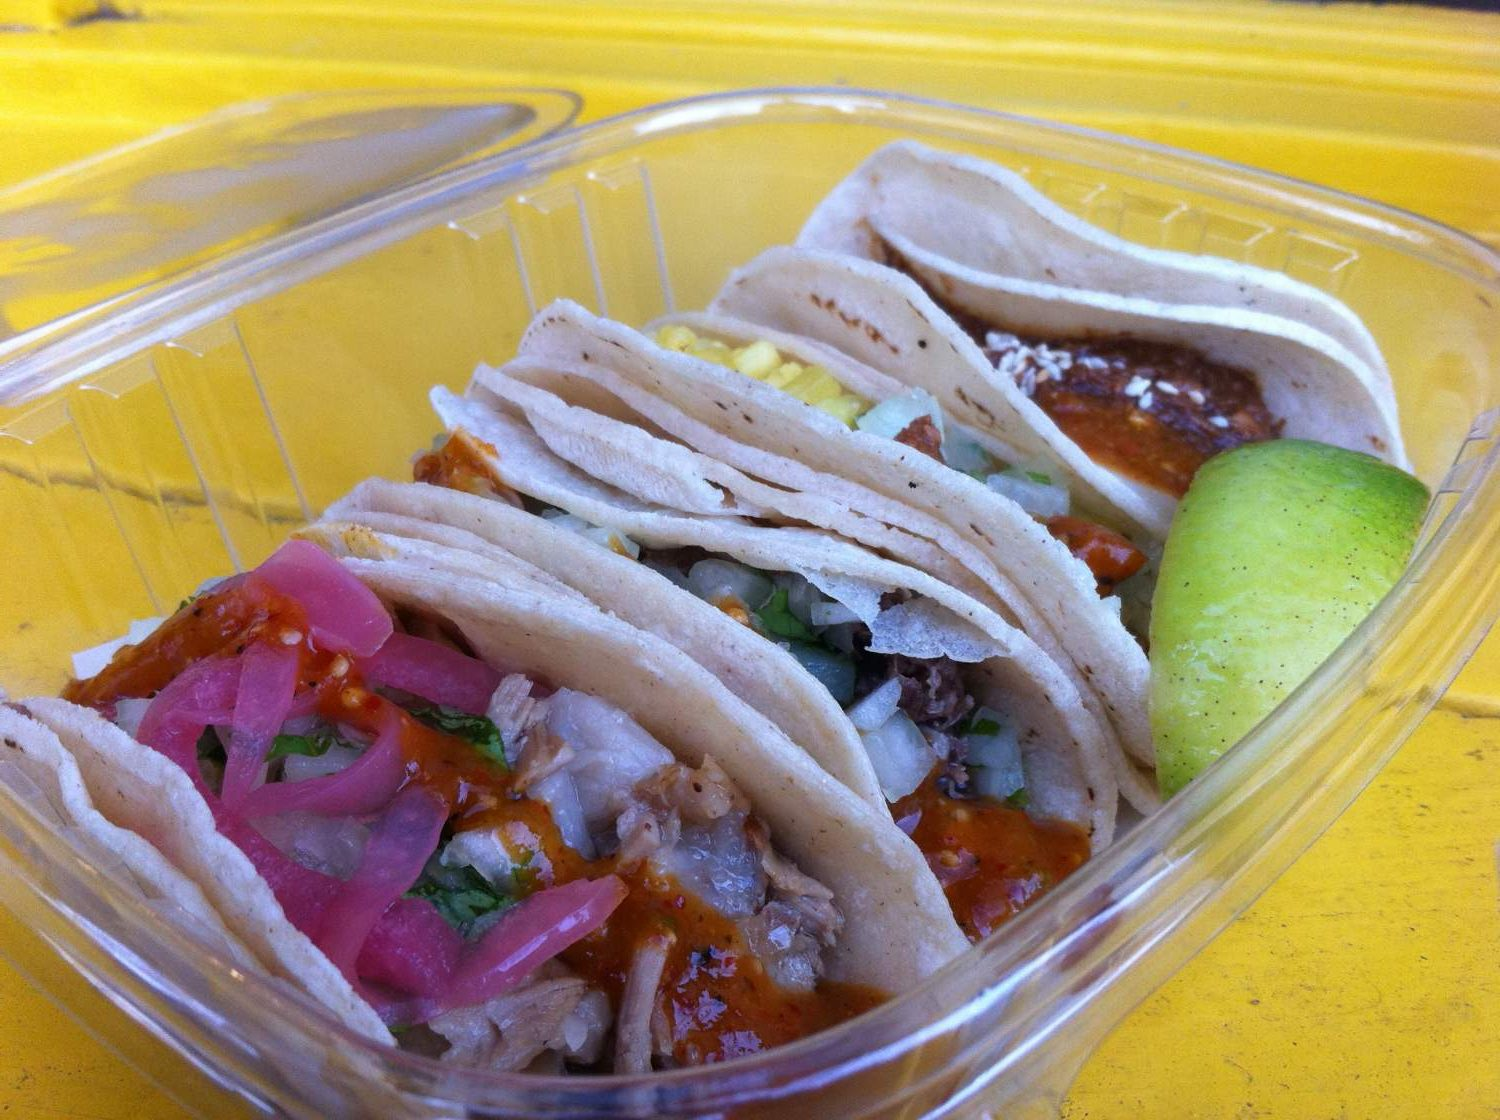 Tacos from the Taqueria Pinche in Vancouver